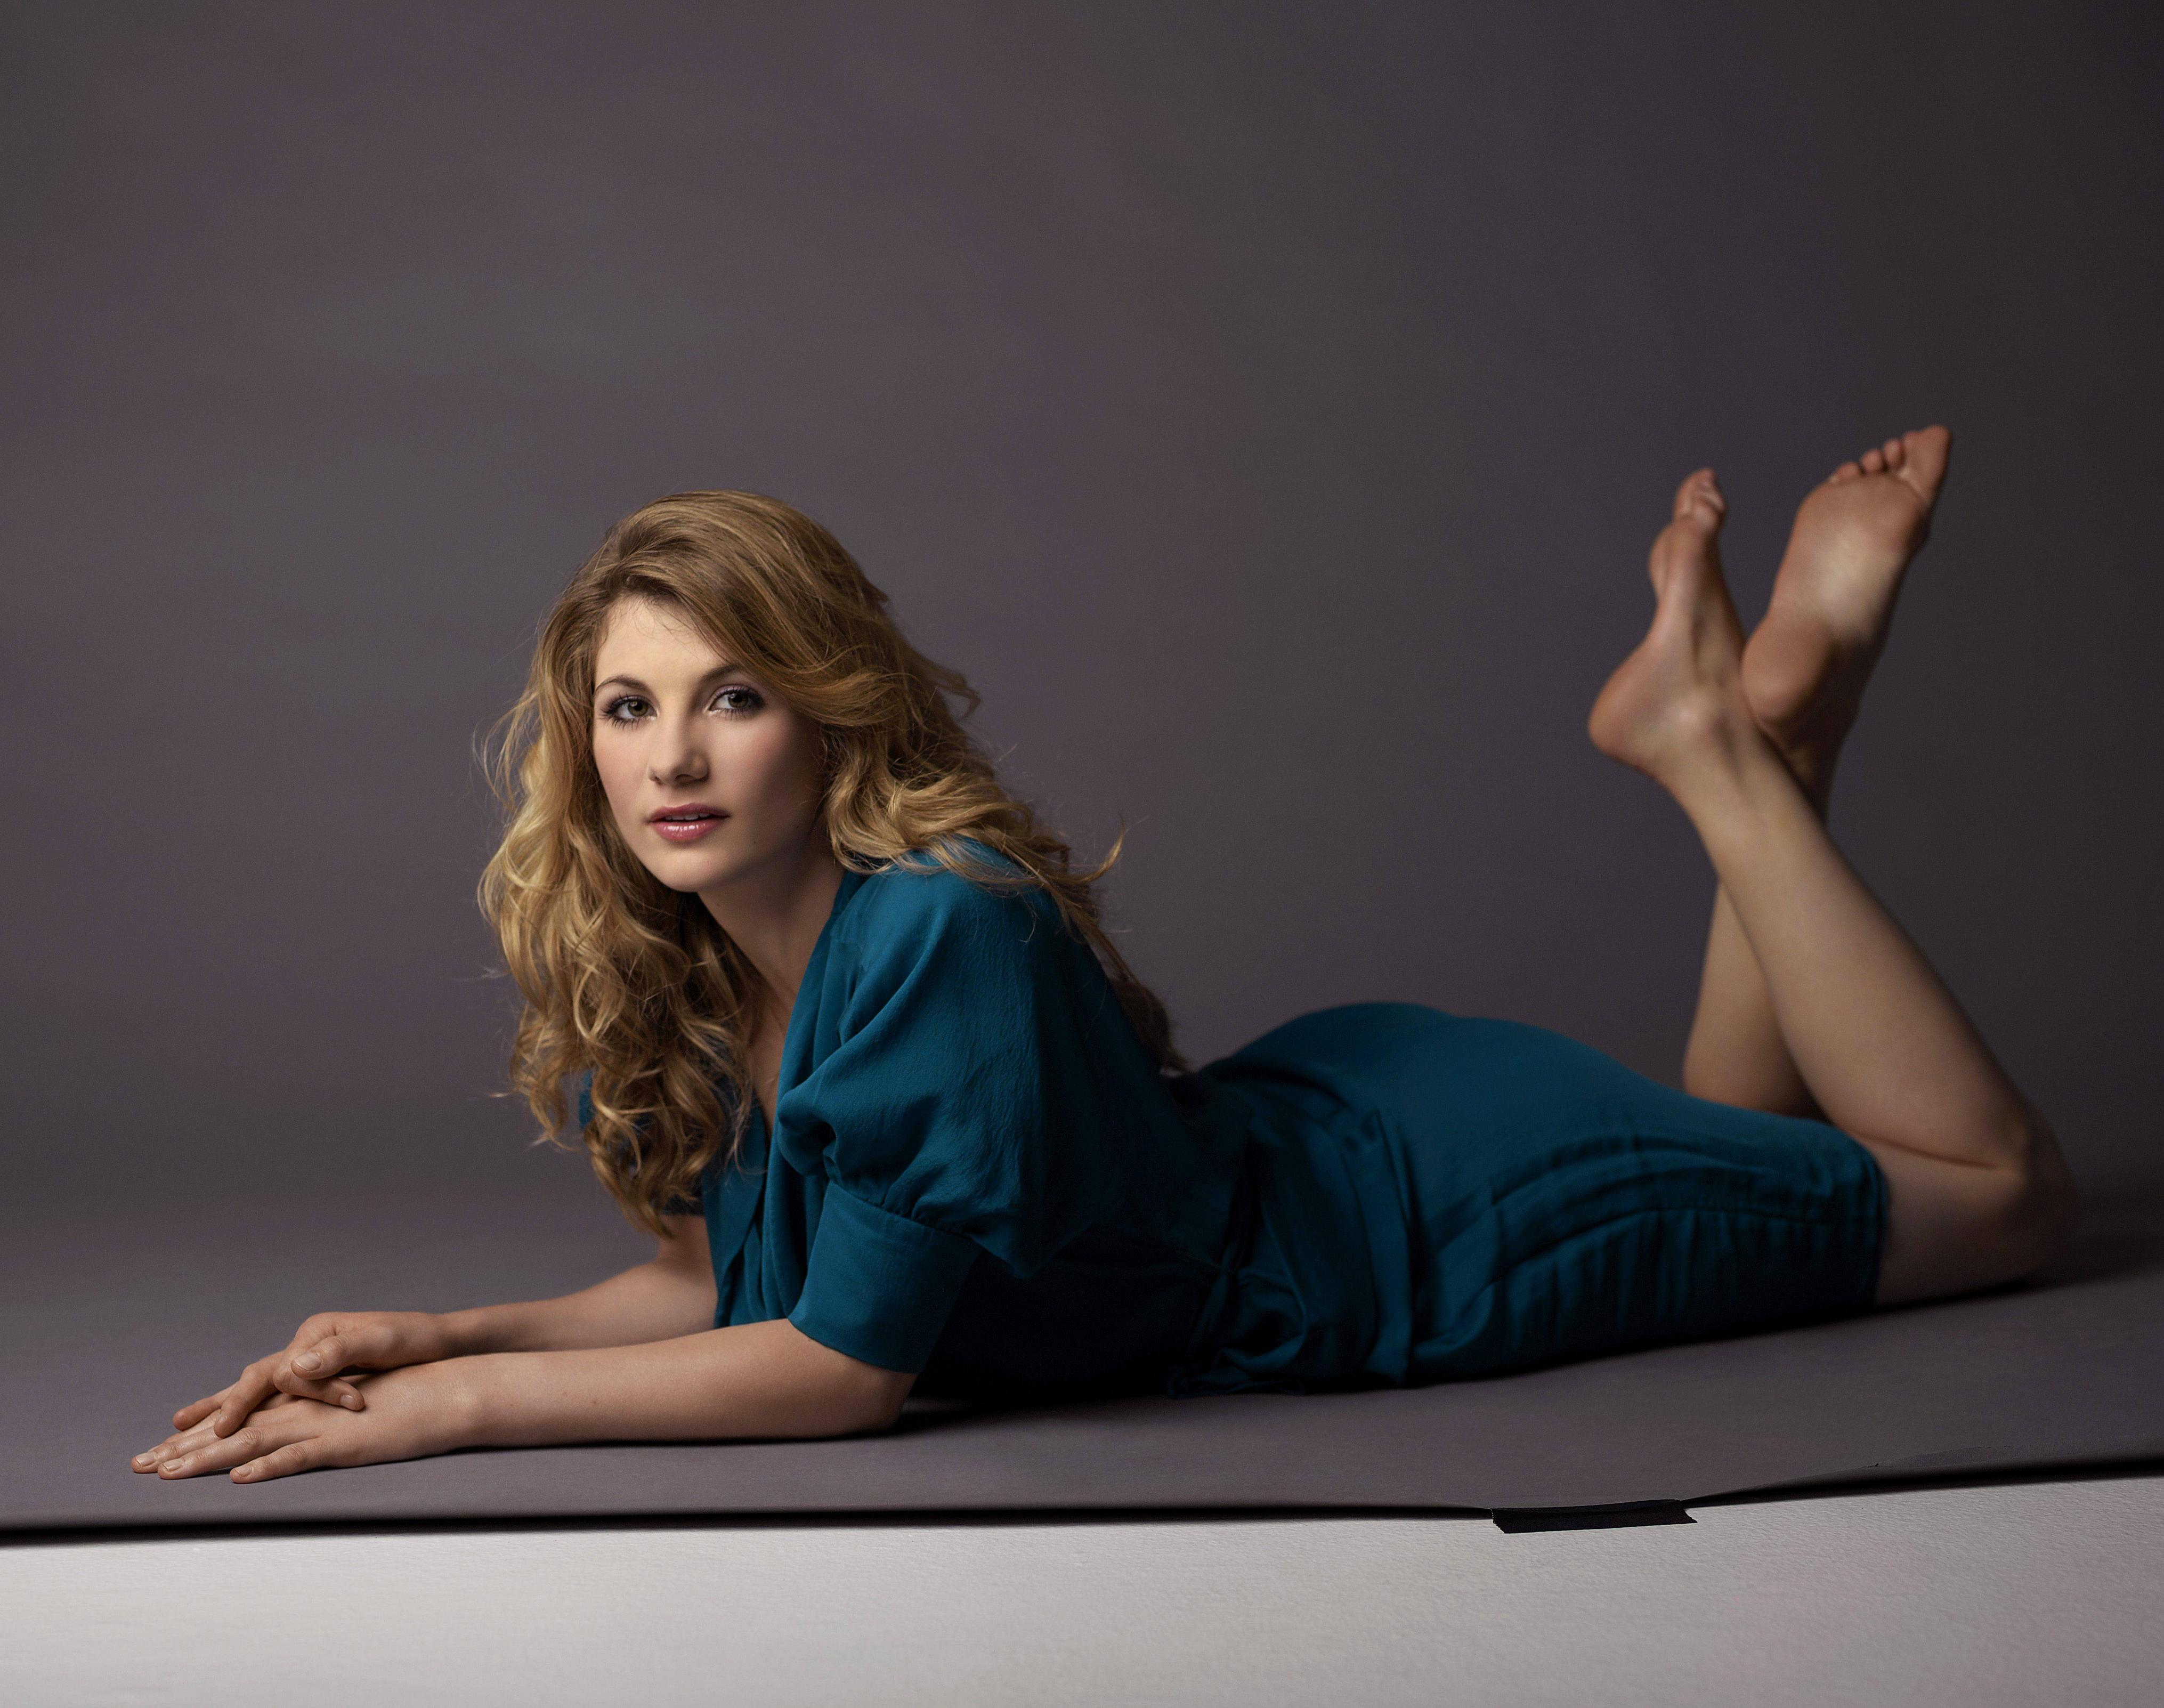 Jodie Whittaker Wallpapers Top Free Jodie Whittaker Backgrounds